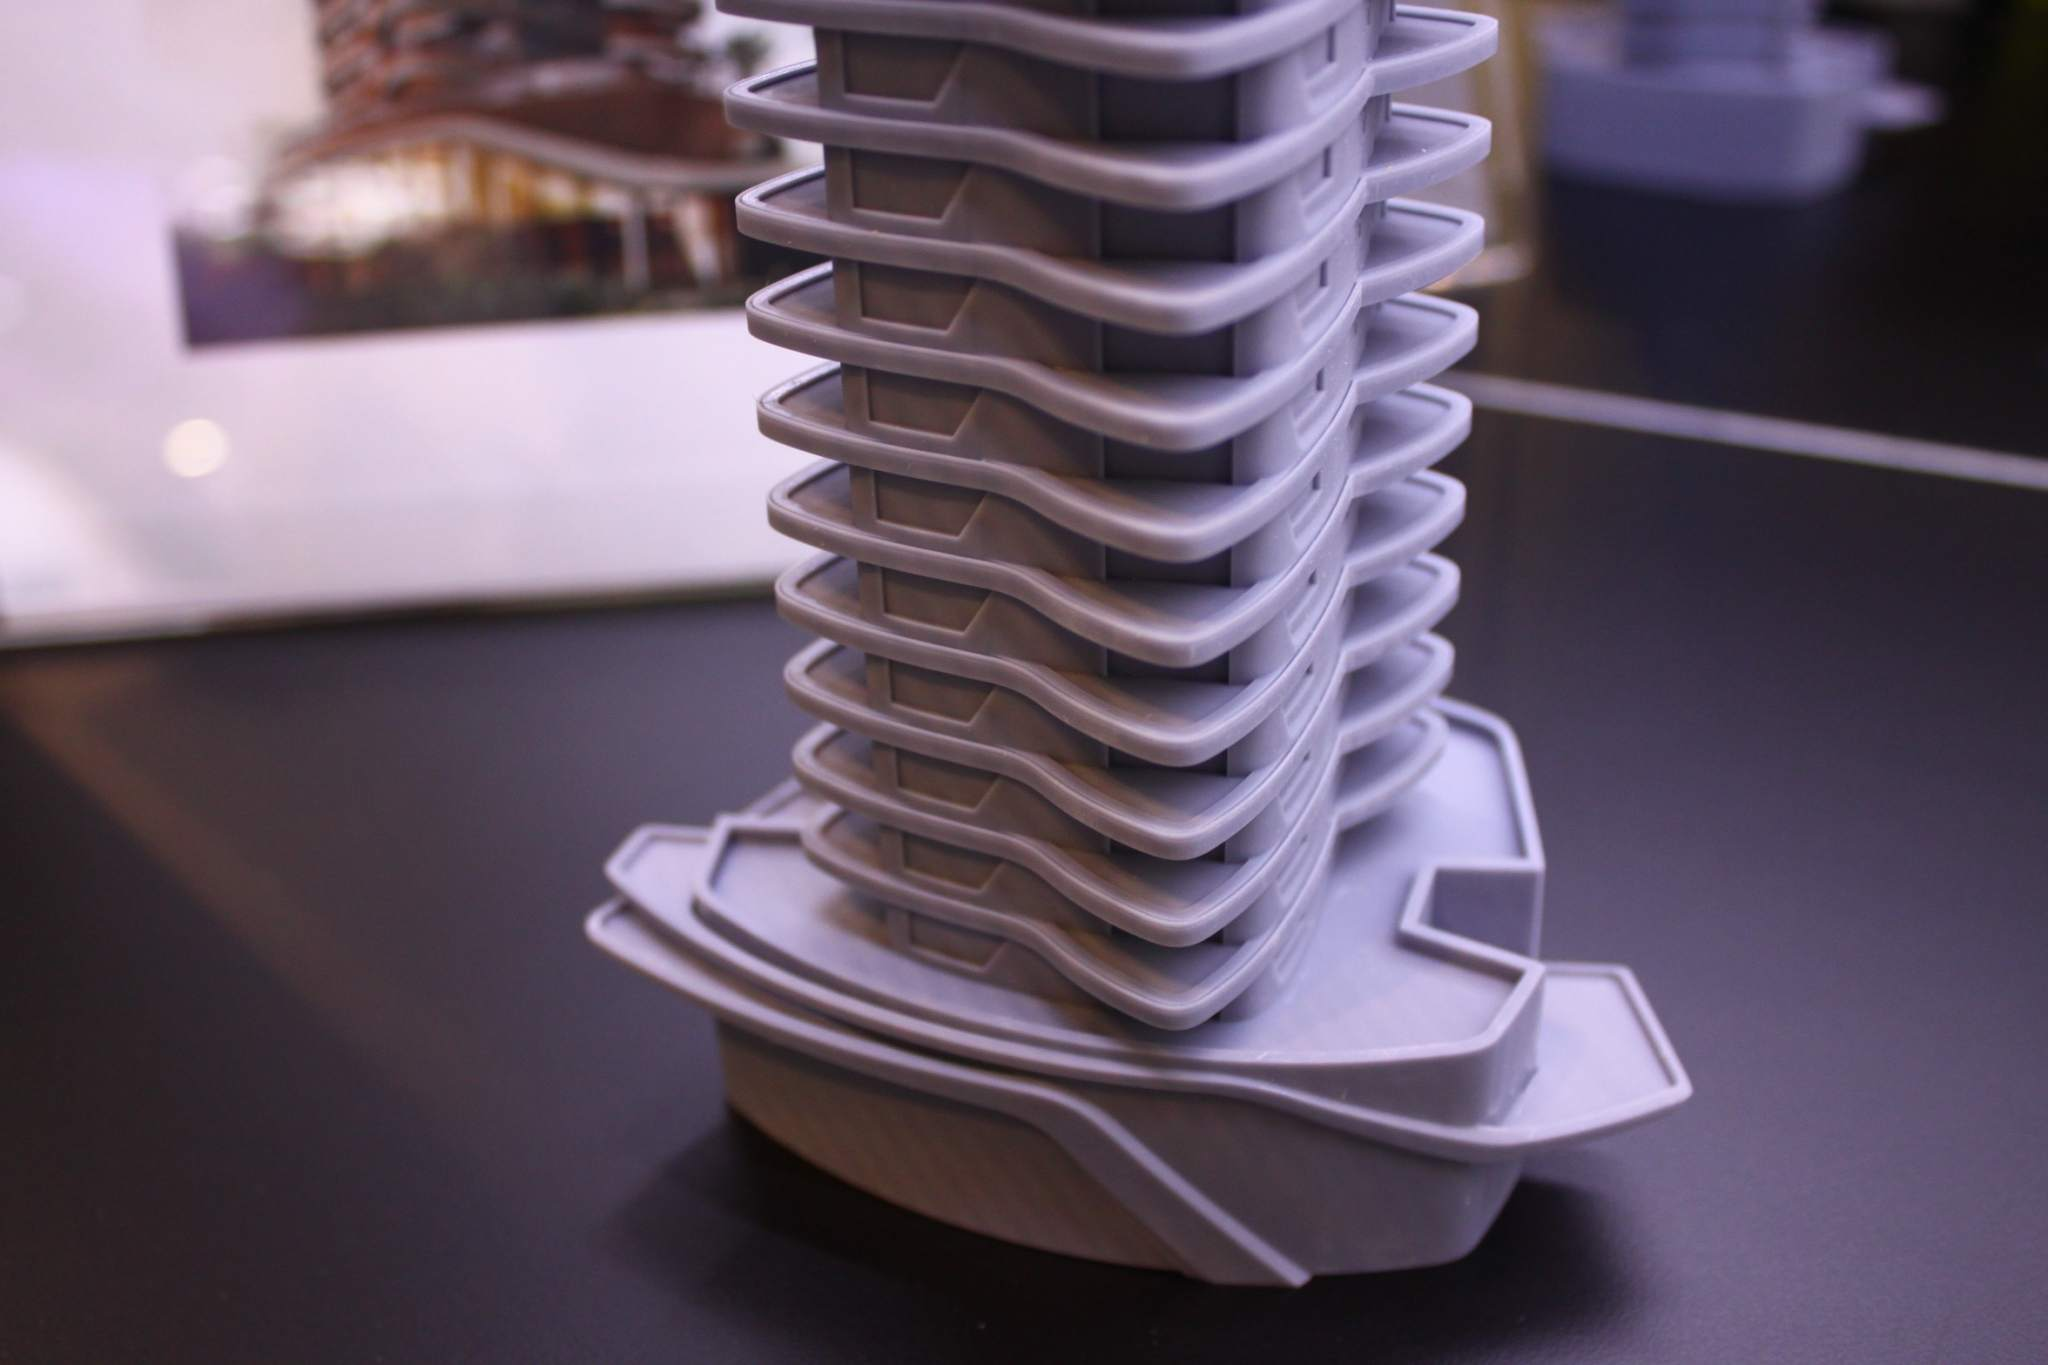 A close-up of the detailed 3D print of Cyrela's residential block in Sao Paulo designed by Pinainfarina. Photo via DWS.